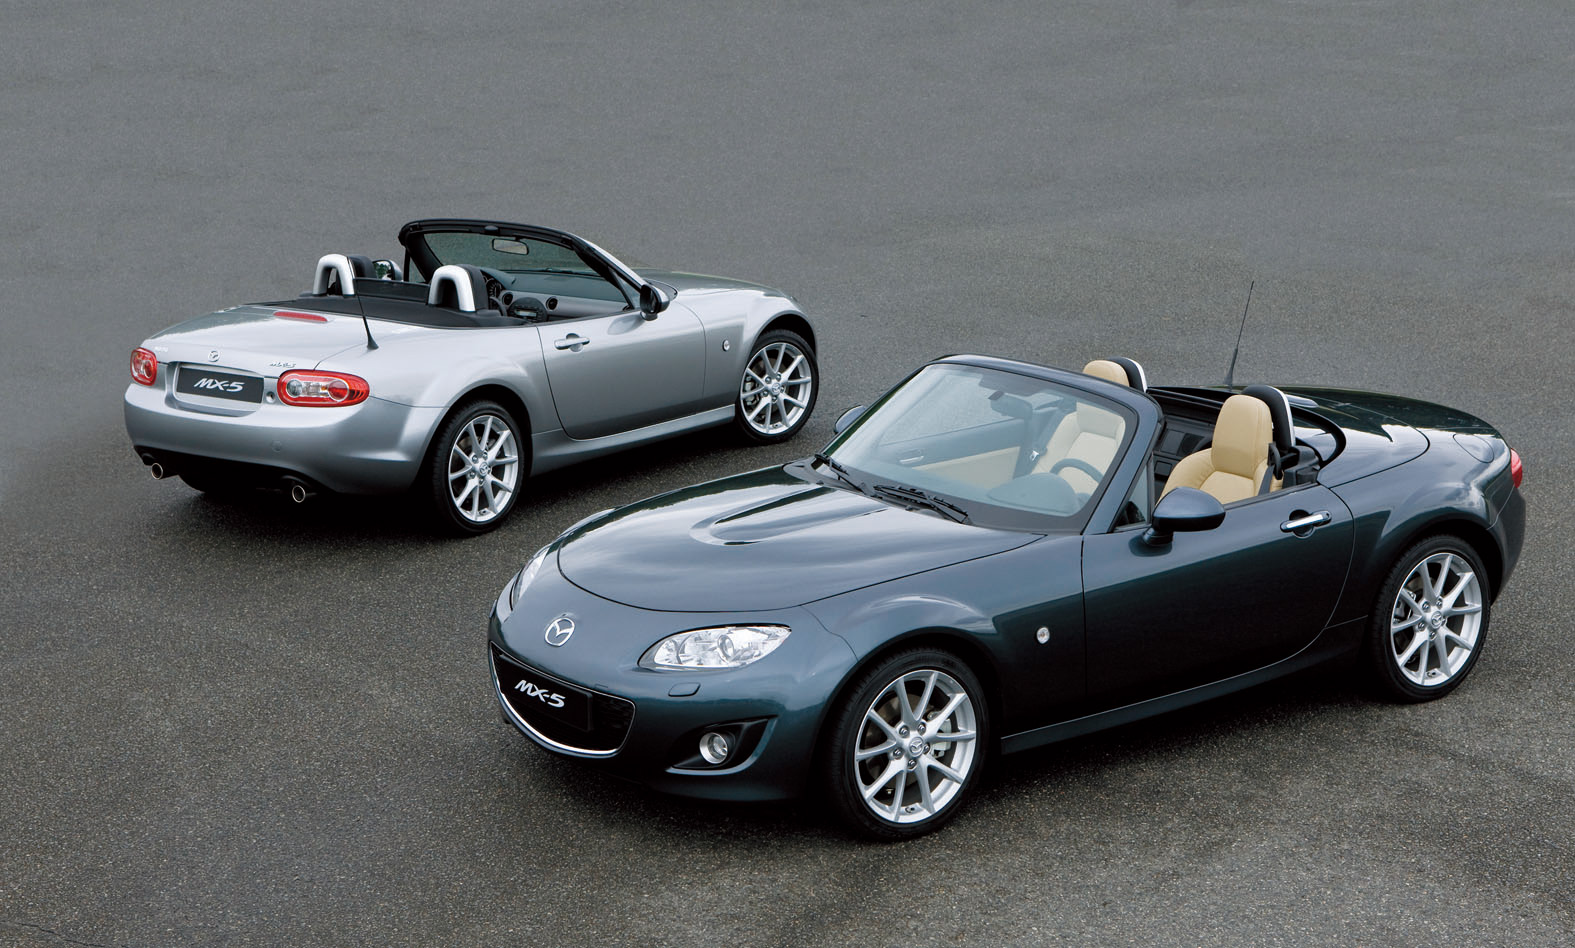 mazda mx5 2009 review amazing pictures and images look at the car. Black Bedroom Furniture Sets. Home Design Ideas